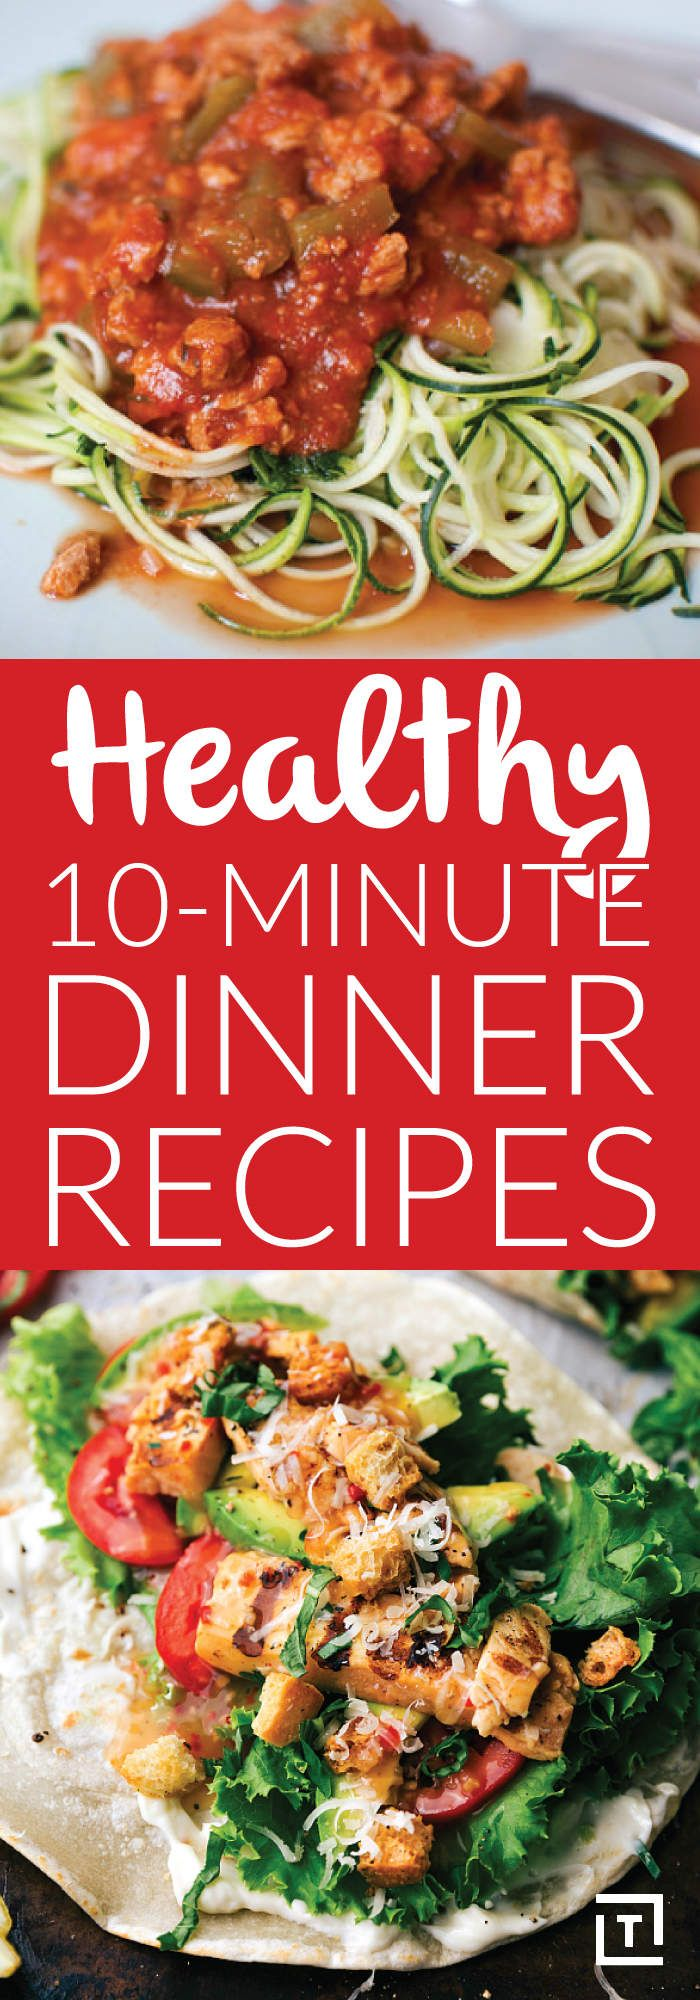 Healthy 10-Minute Dinner Recipes